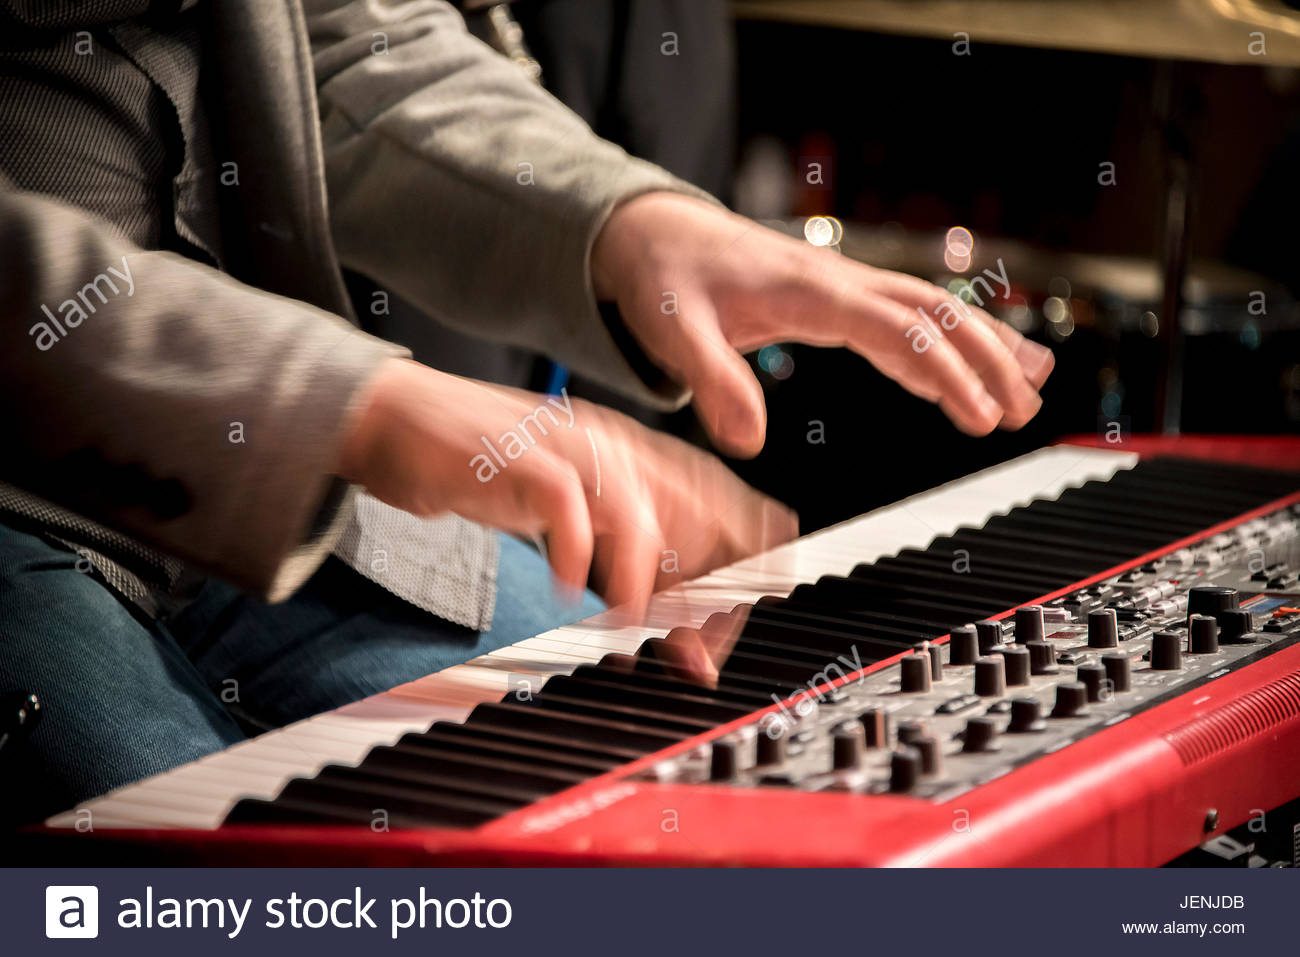 Hands of musician playing keyboard, musical instrument, synthesizer, concert - Stock Image